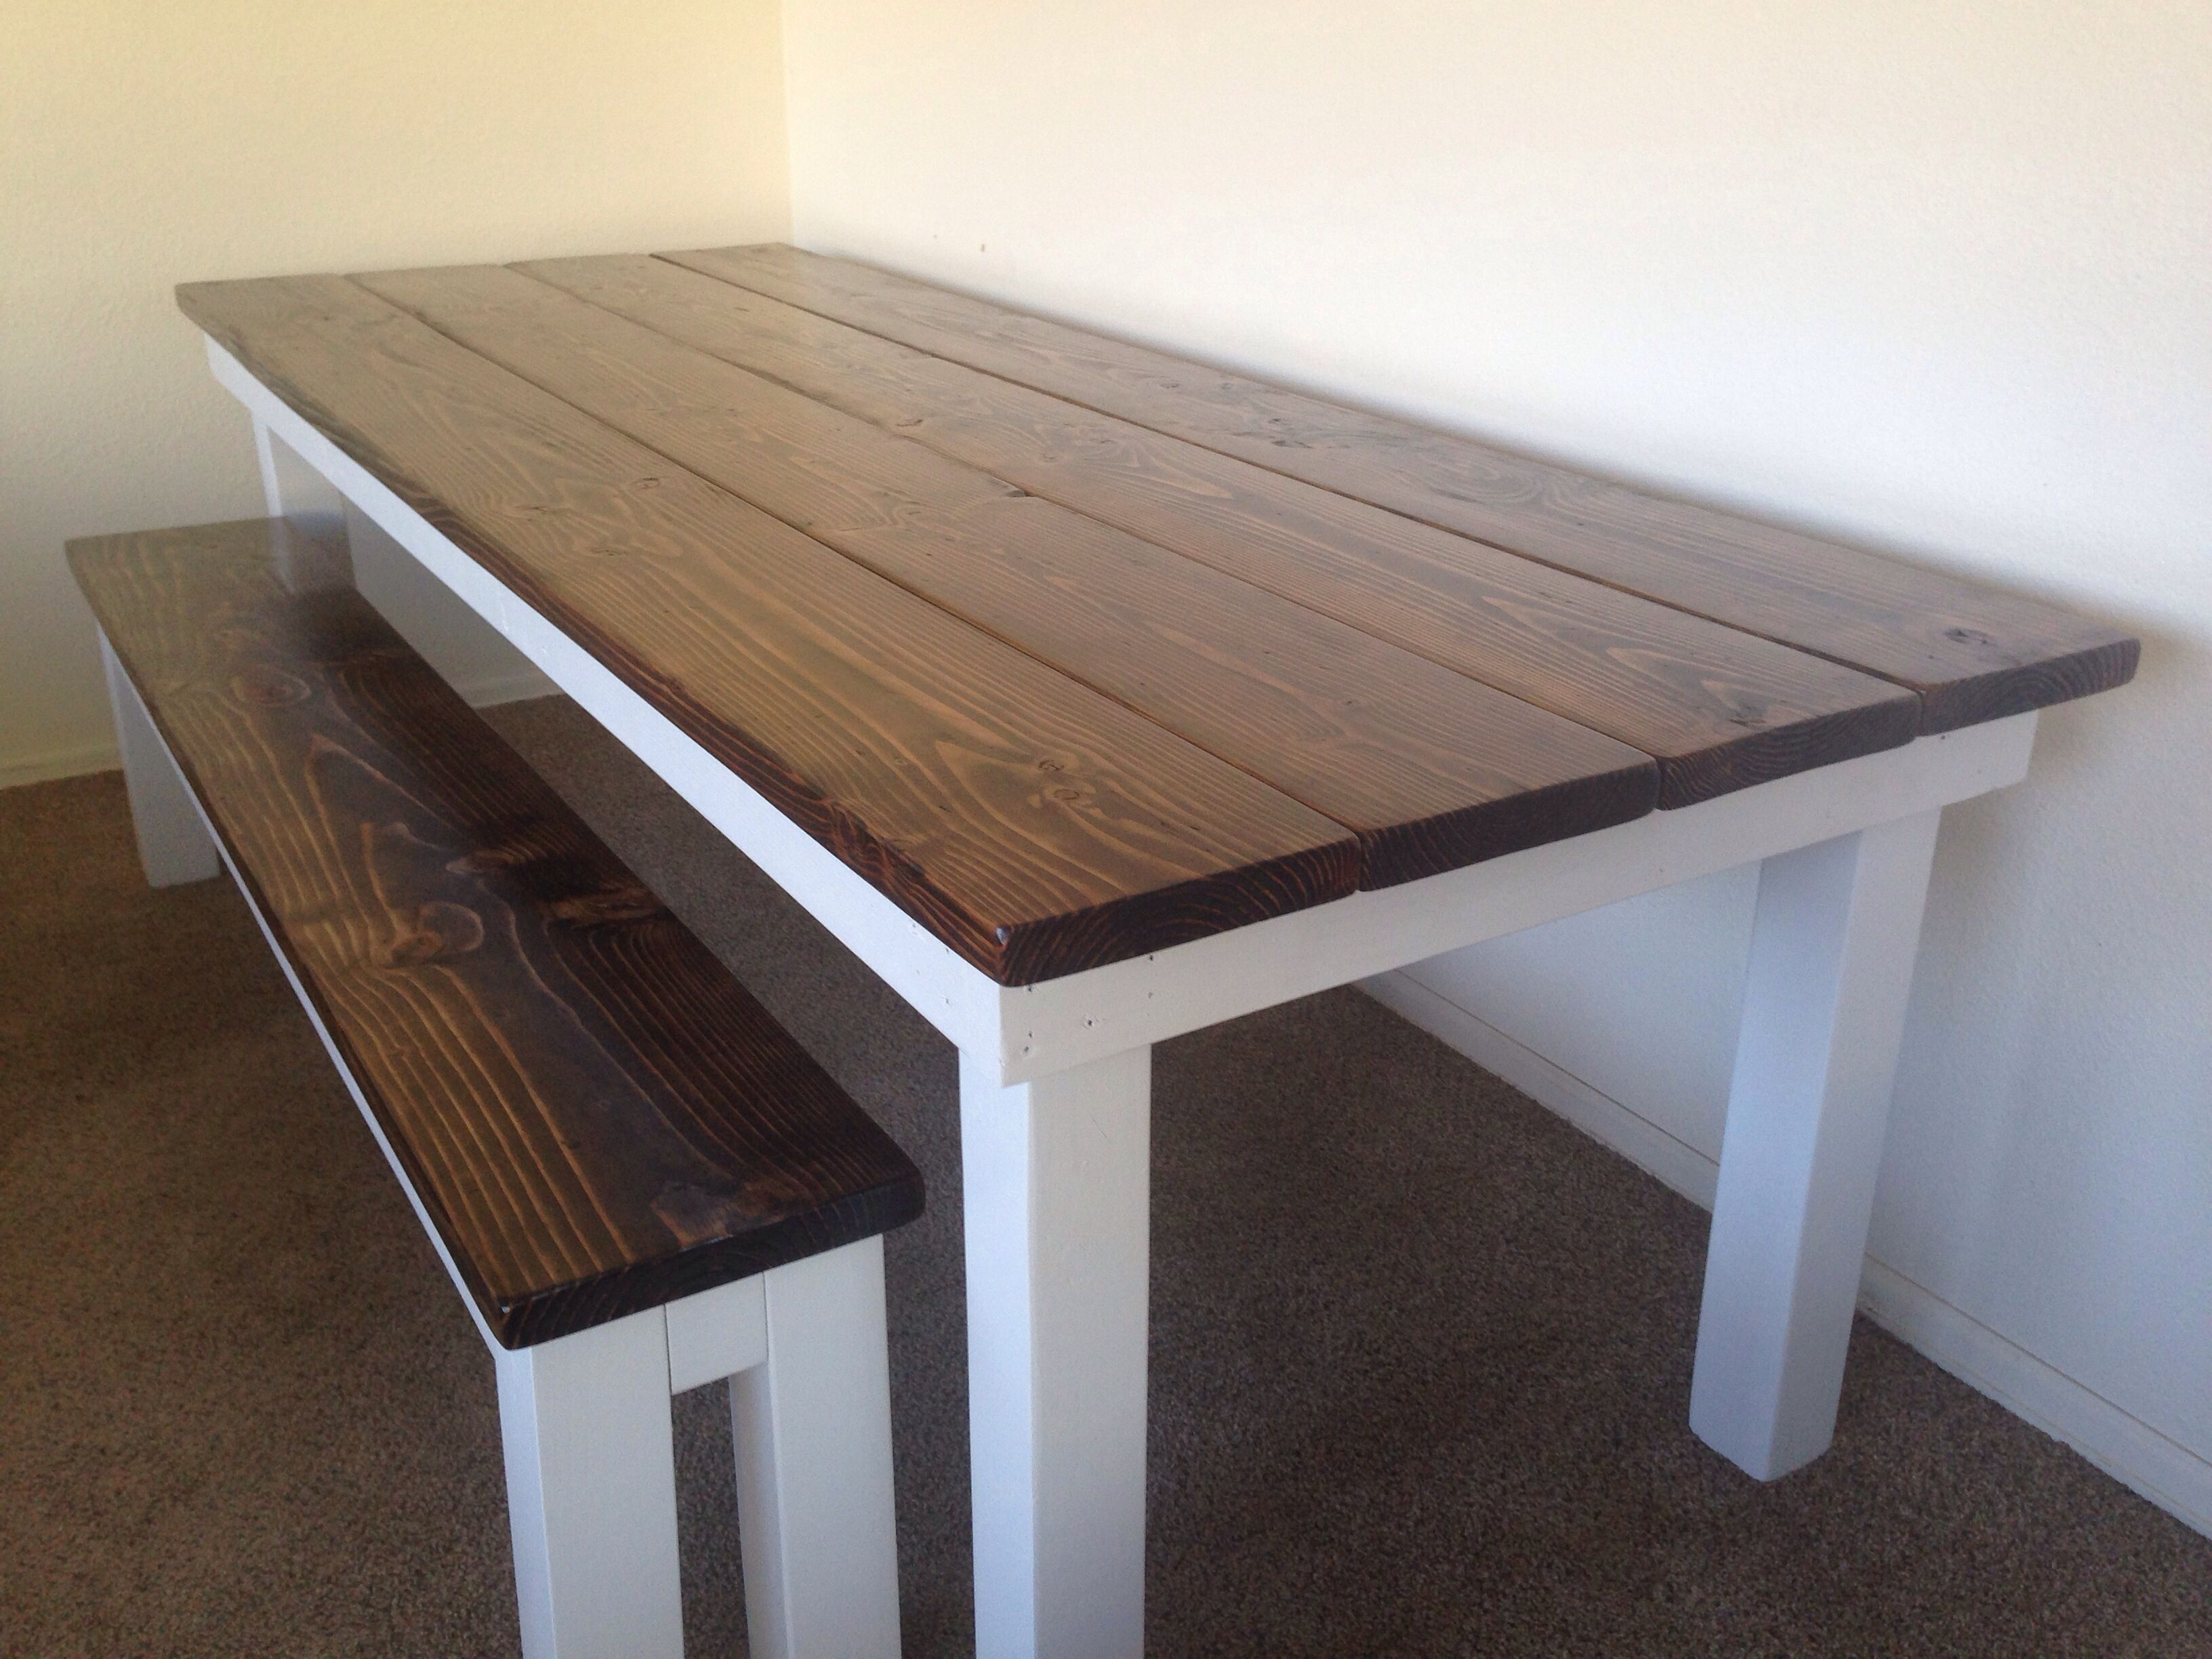 Marvelous Custom Planked Top Farmhouse Table With Dark Walnut Stain And White Base.